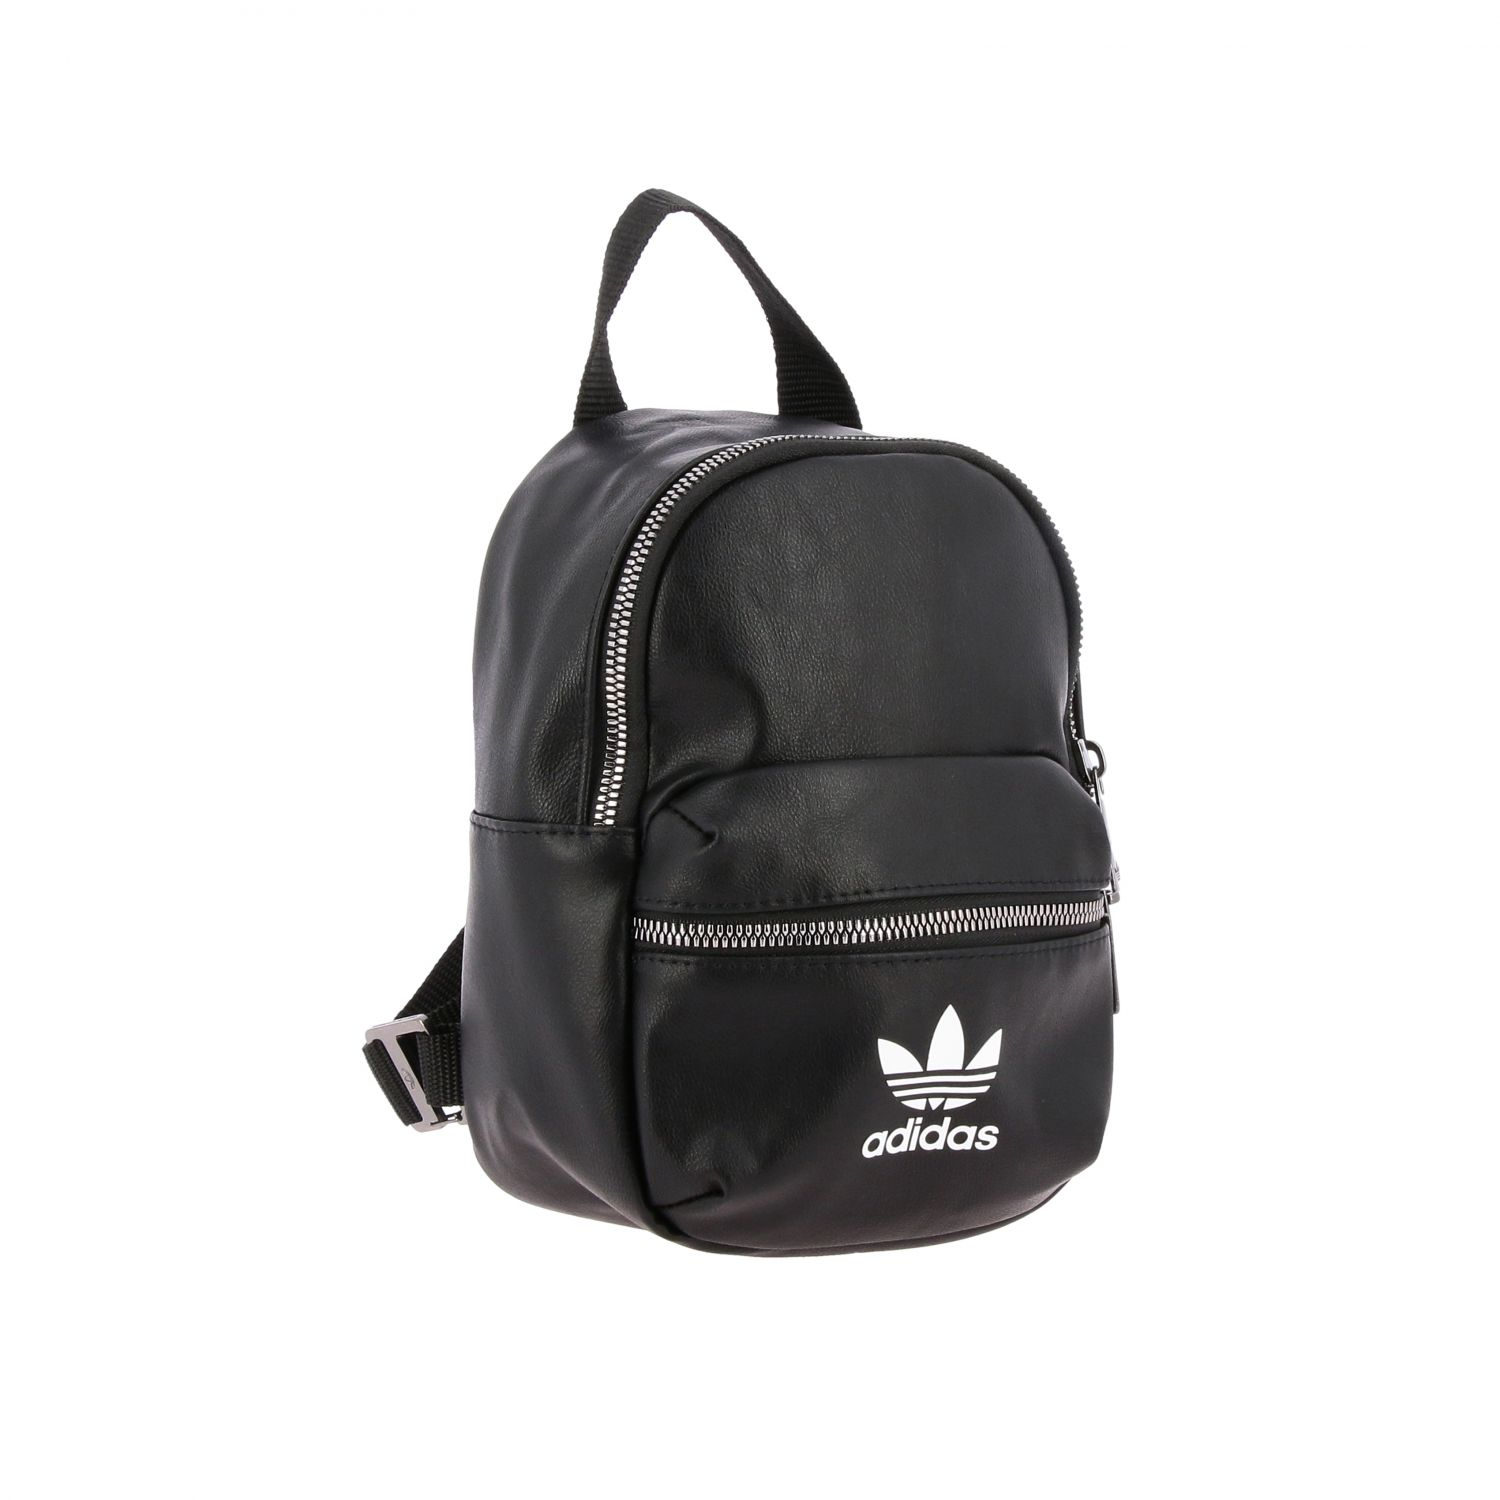 Clutch Adidas Originals: Clutch kids Adidas Originals black 3